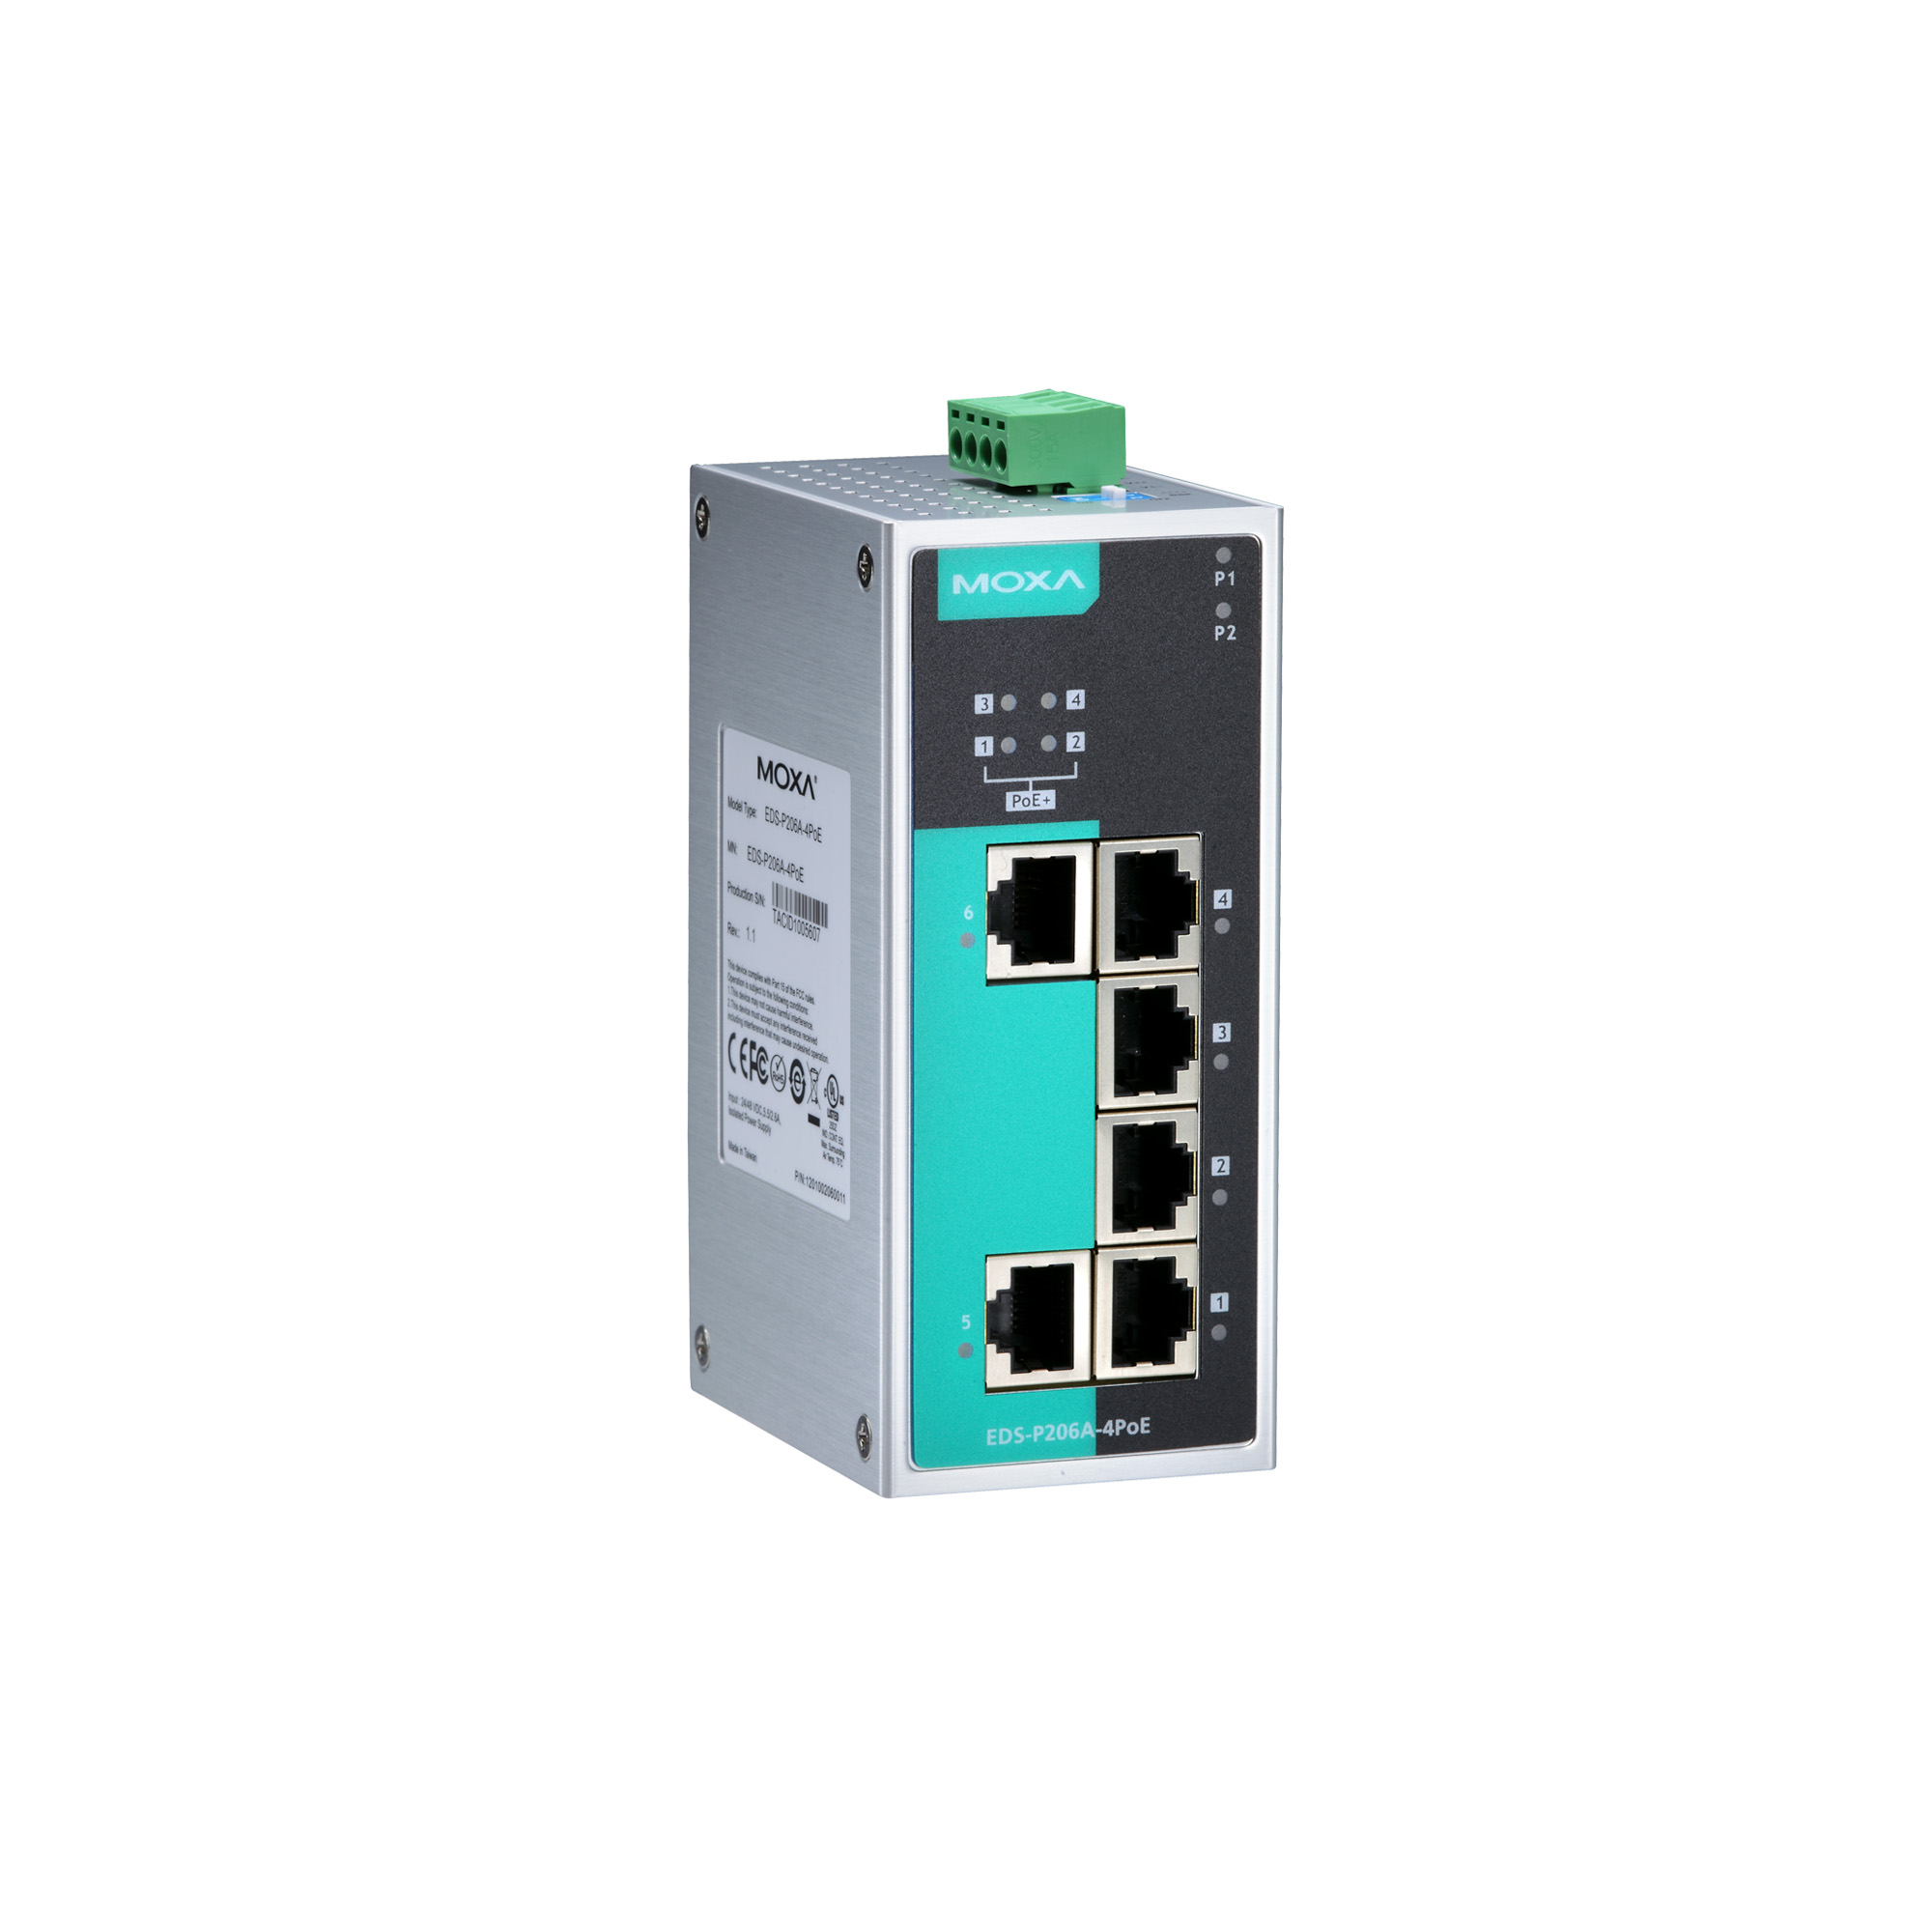 Eds P206a Series Unmanaged Switches Moxa